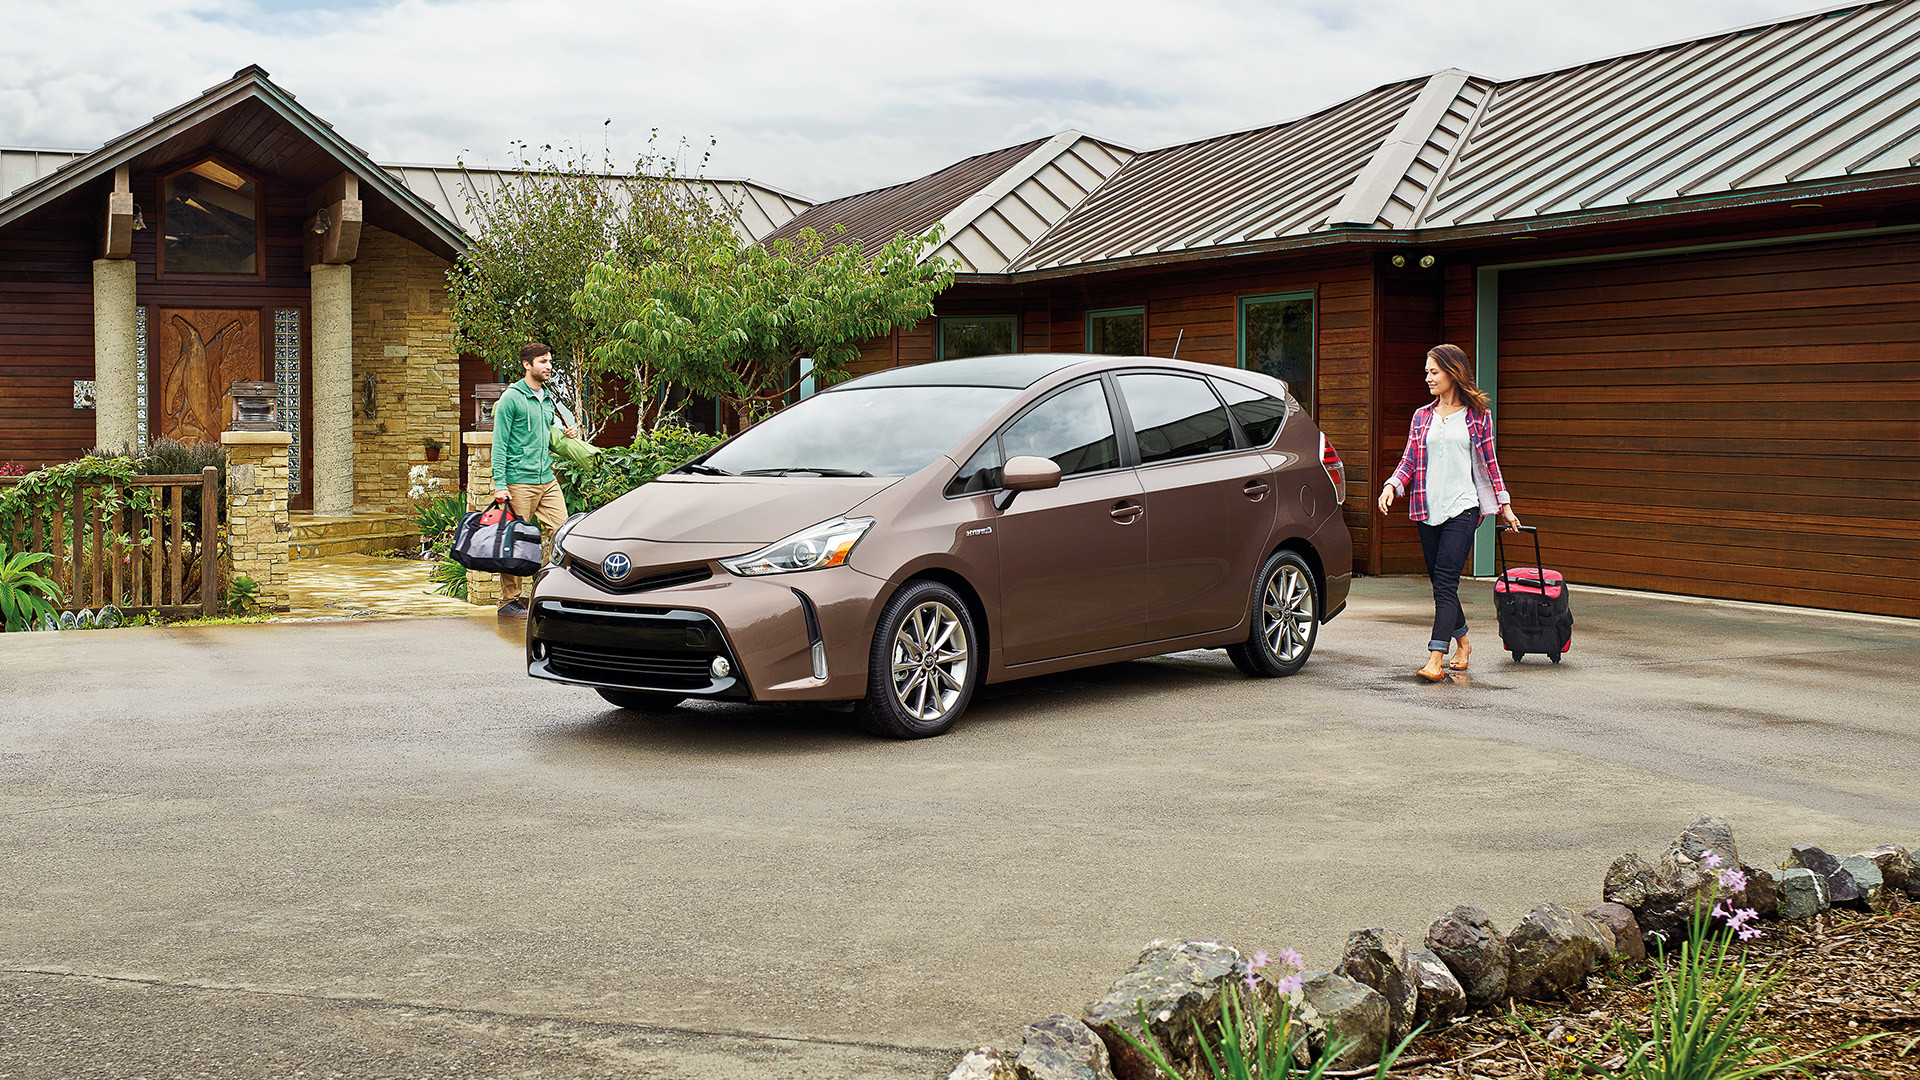 2015 Toyota Prius v for Sale in Auburn at Doxon Toyota